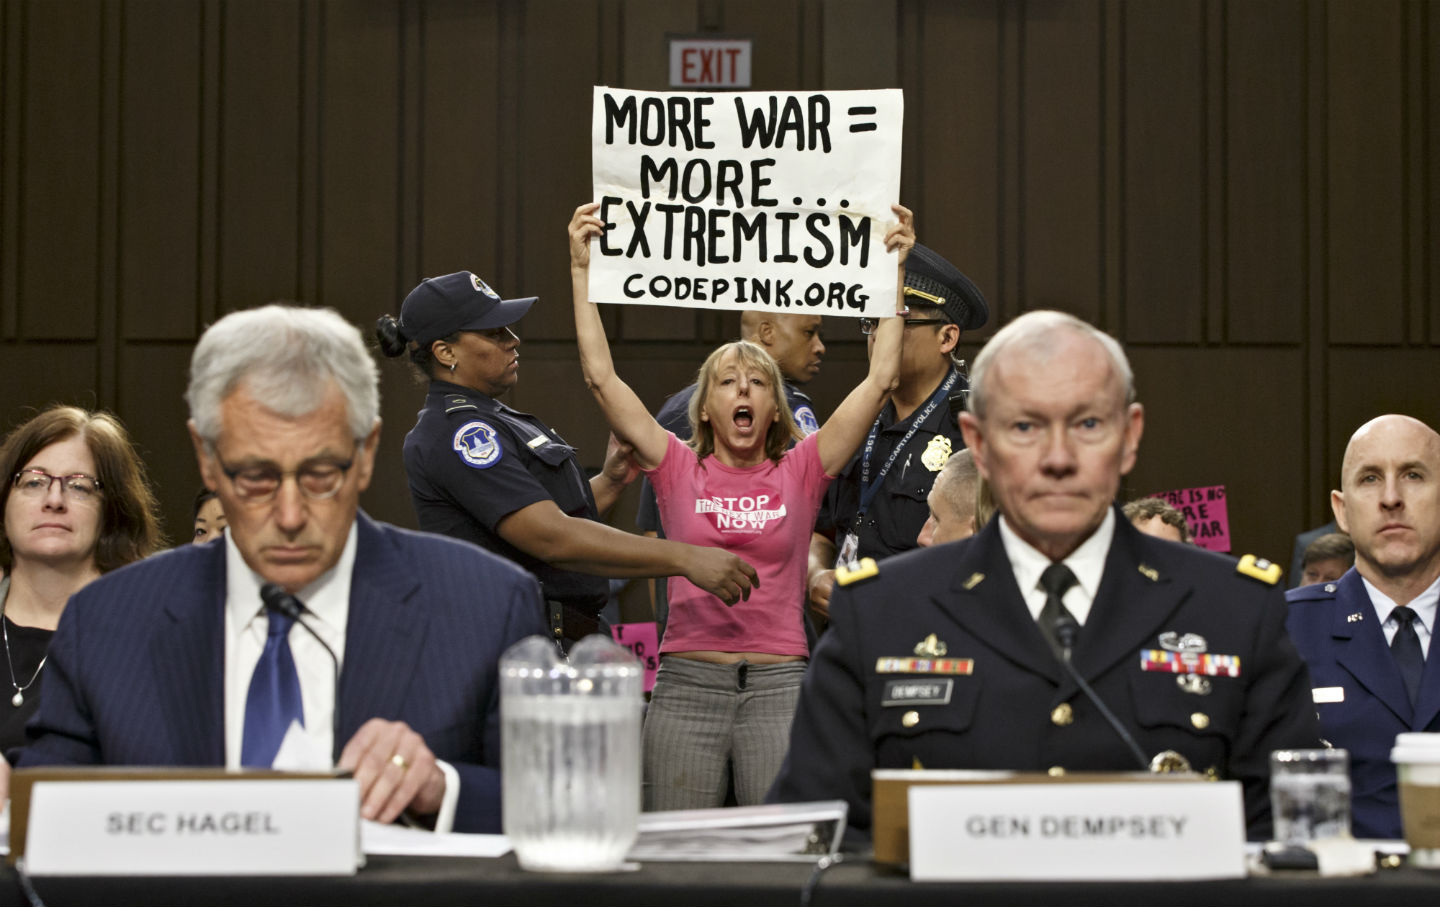 More-War-More-Extremism